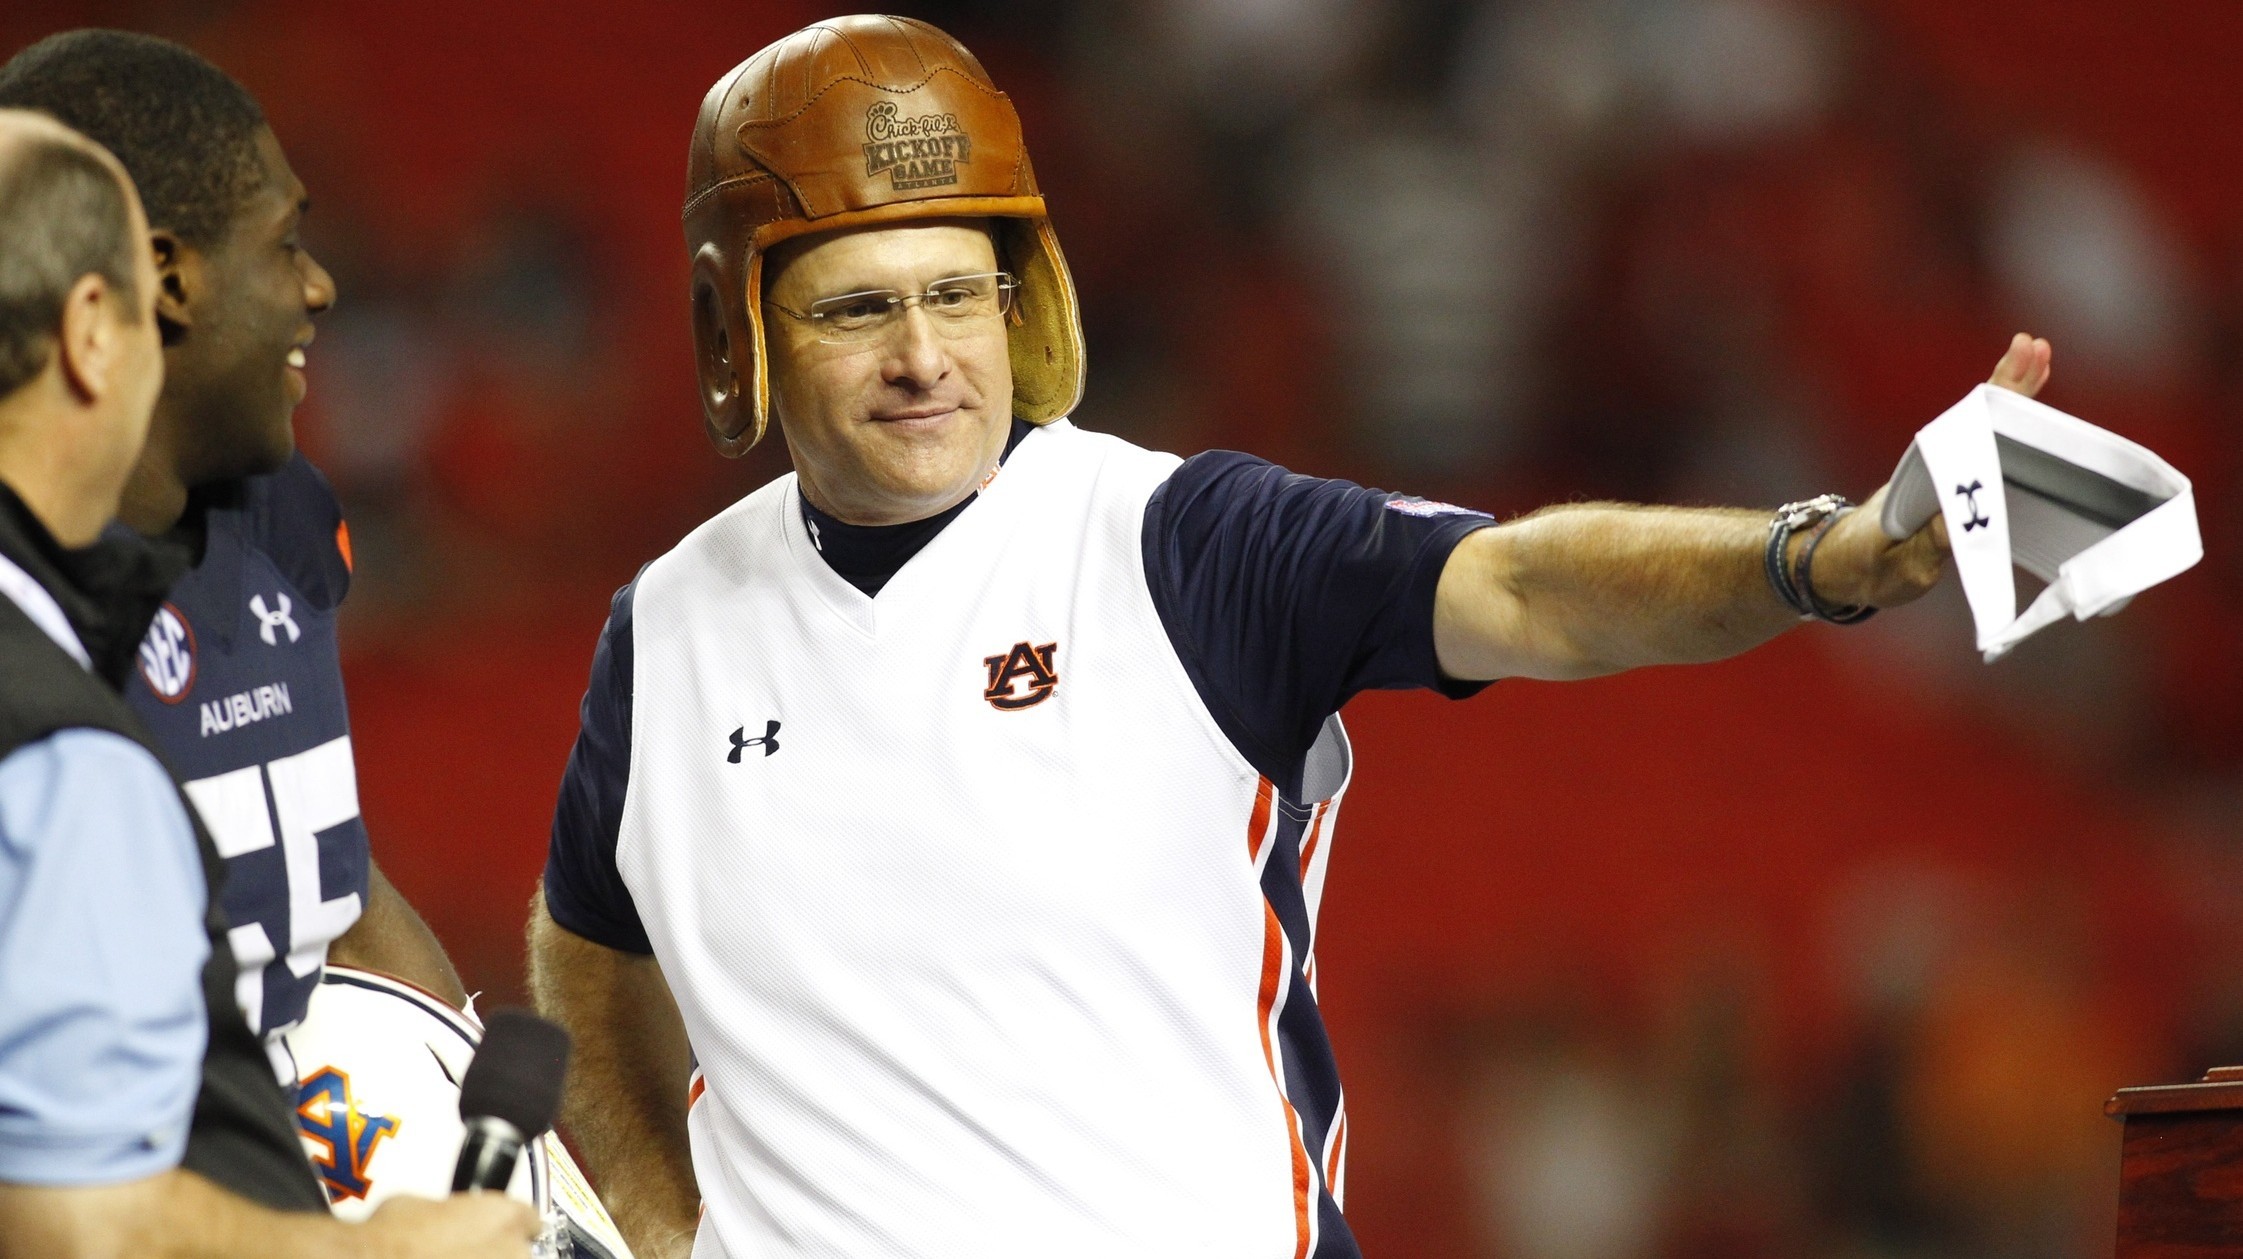 Gus Malzahn's Auburn Extension Shows That College Football Is Rich, And Crazy